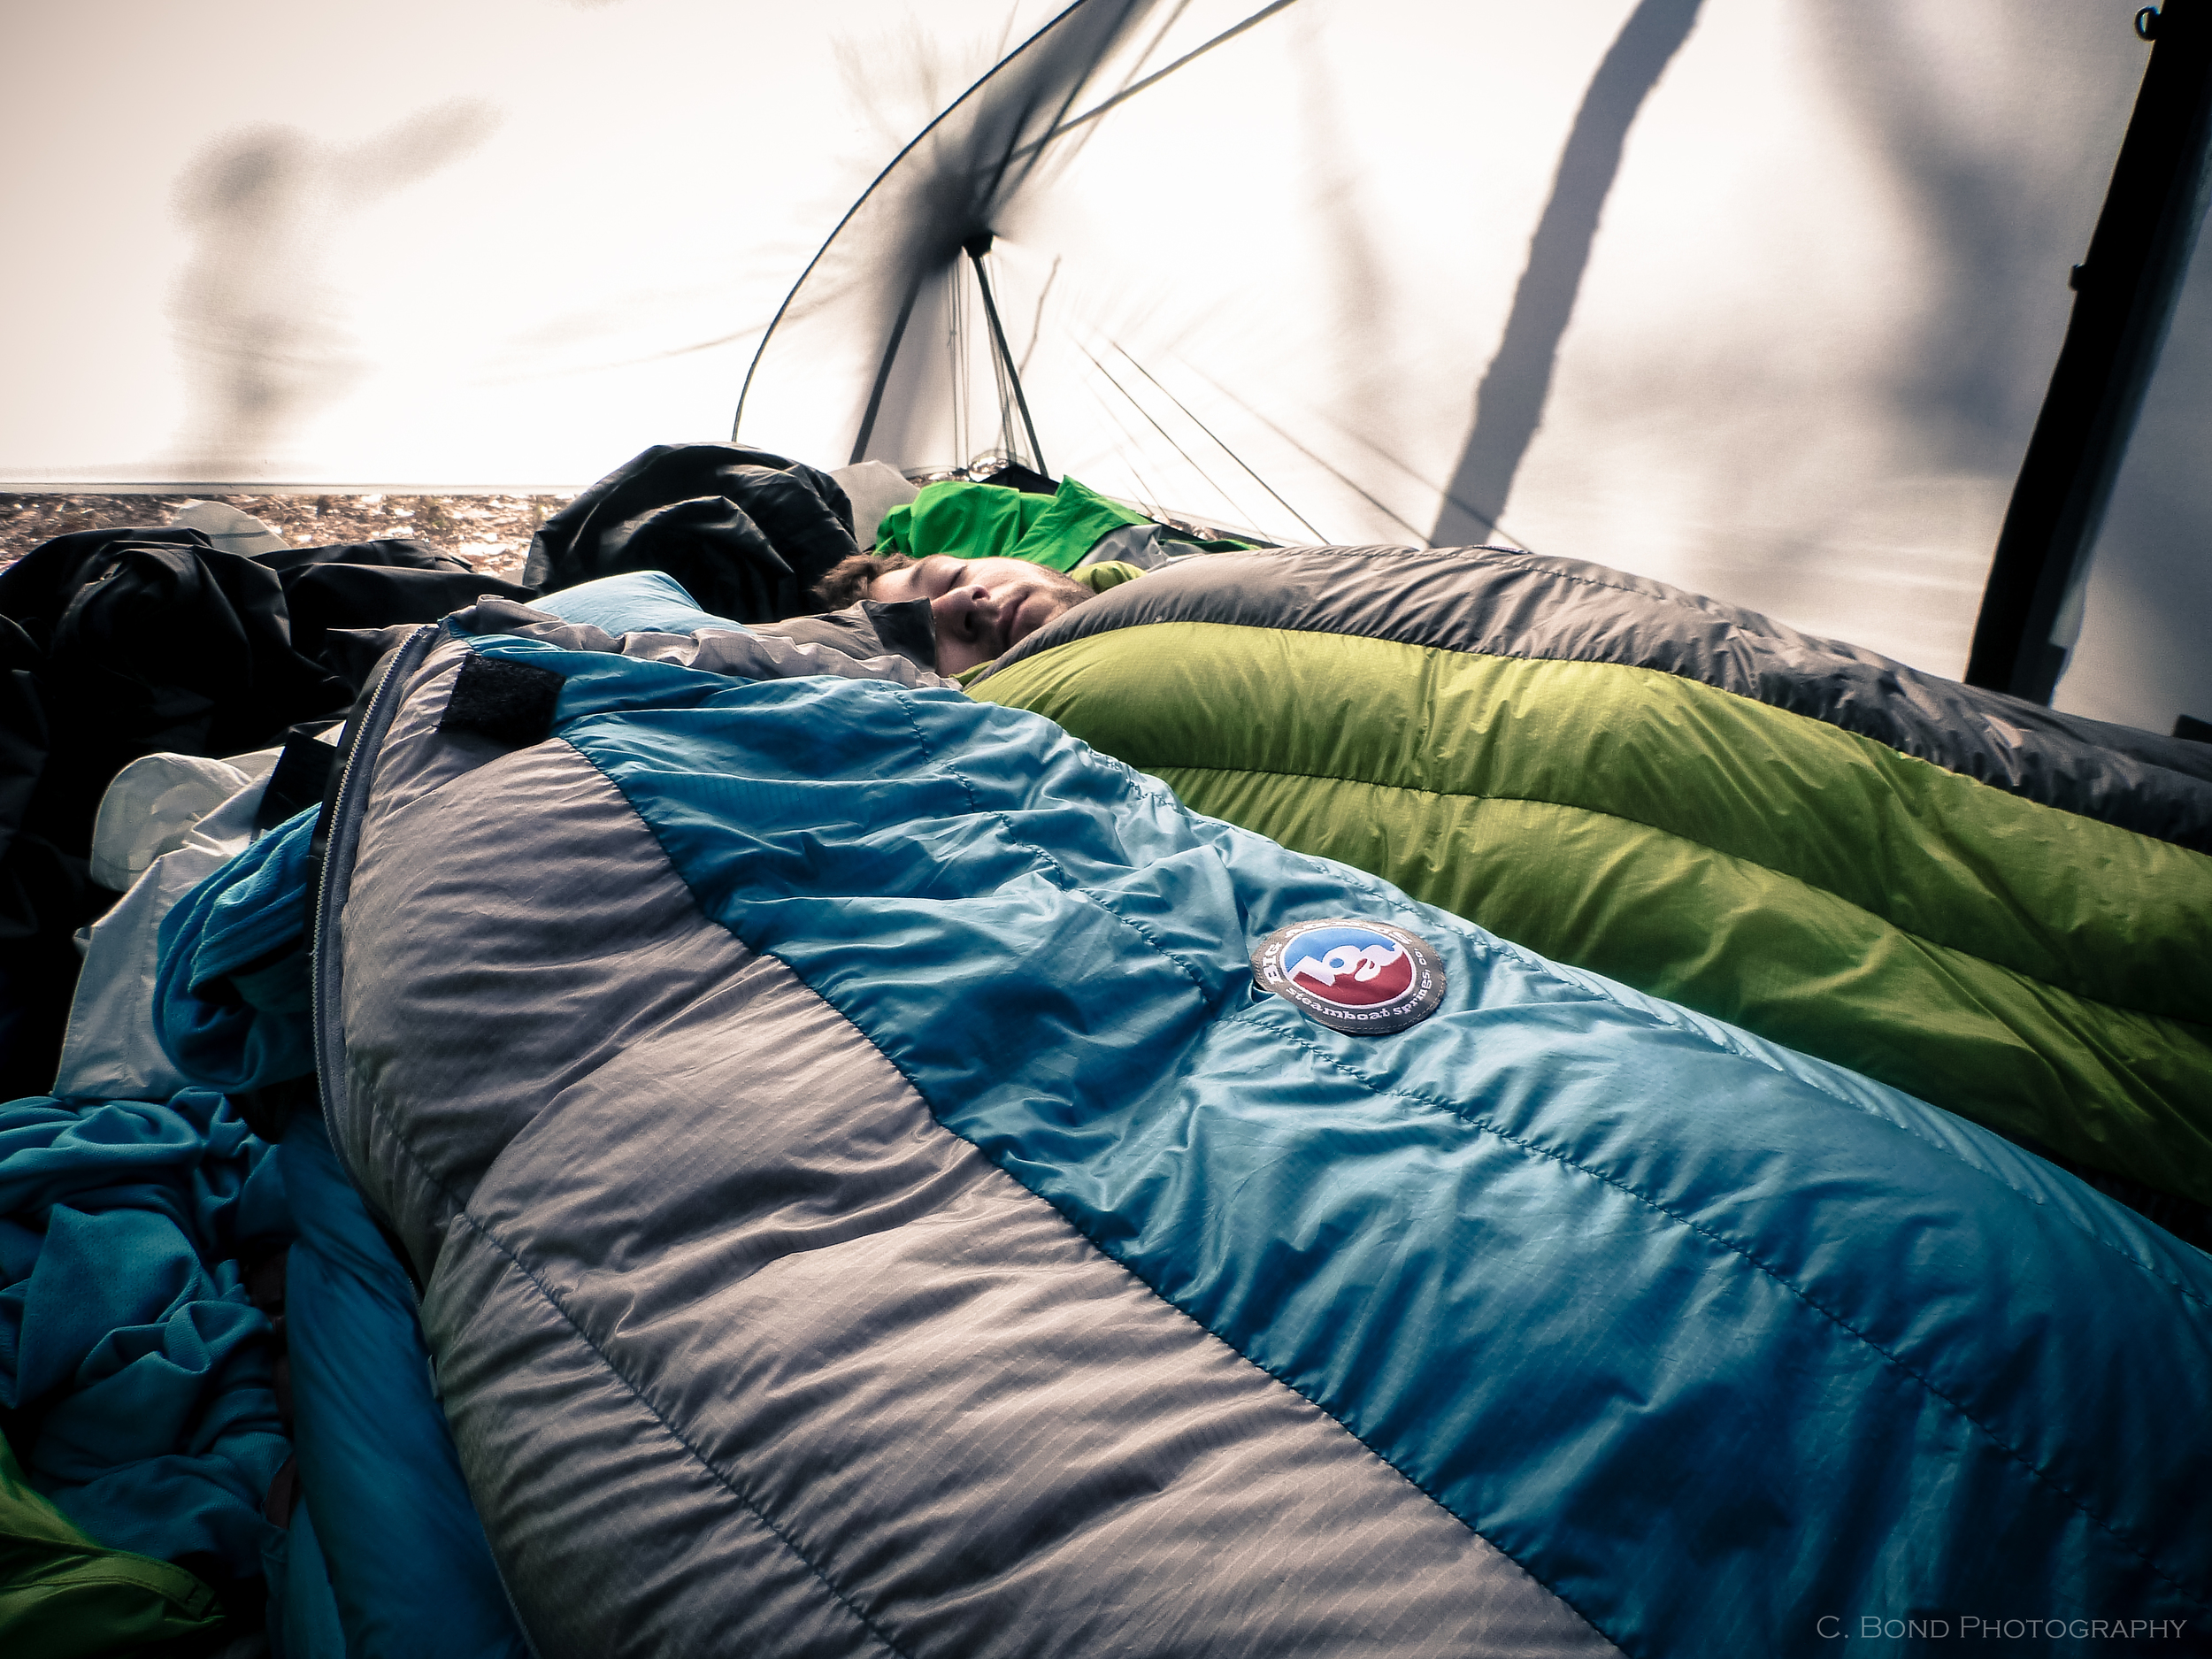 We all had Big Agnes Sleeping Bags and Pads.  The bags were awesome, the pads... not so great.